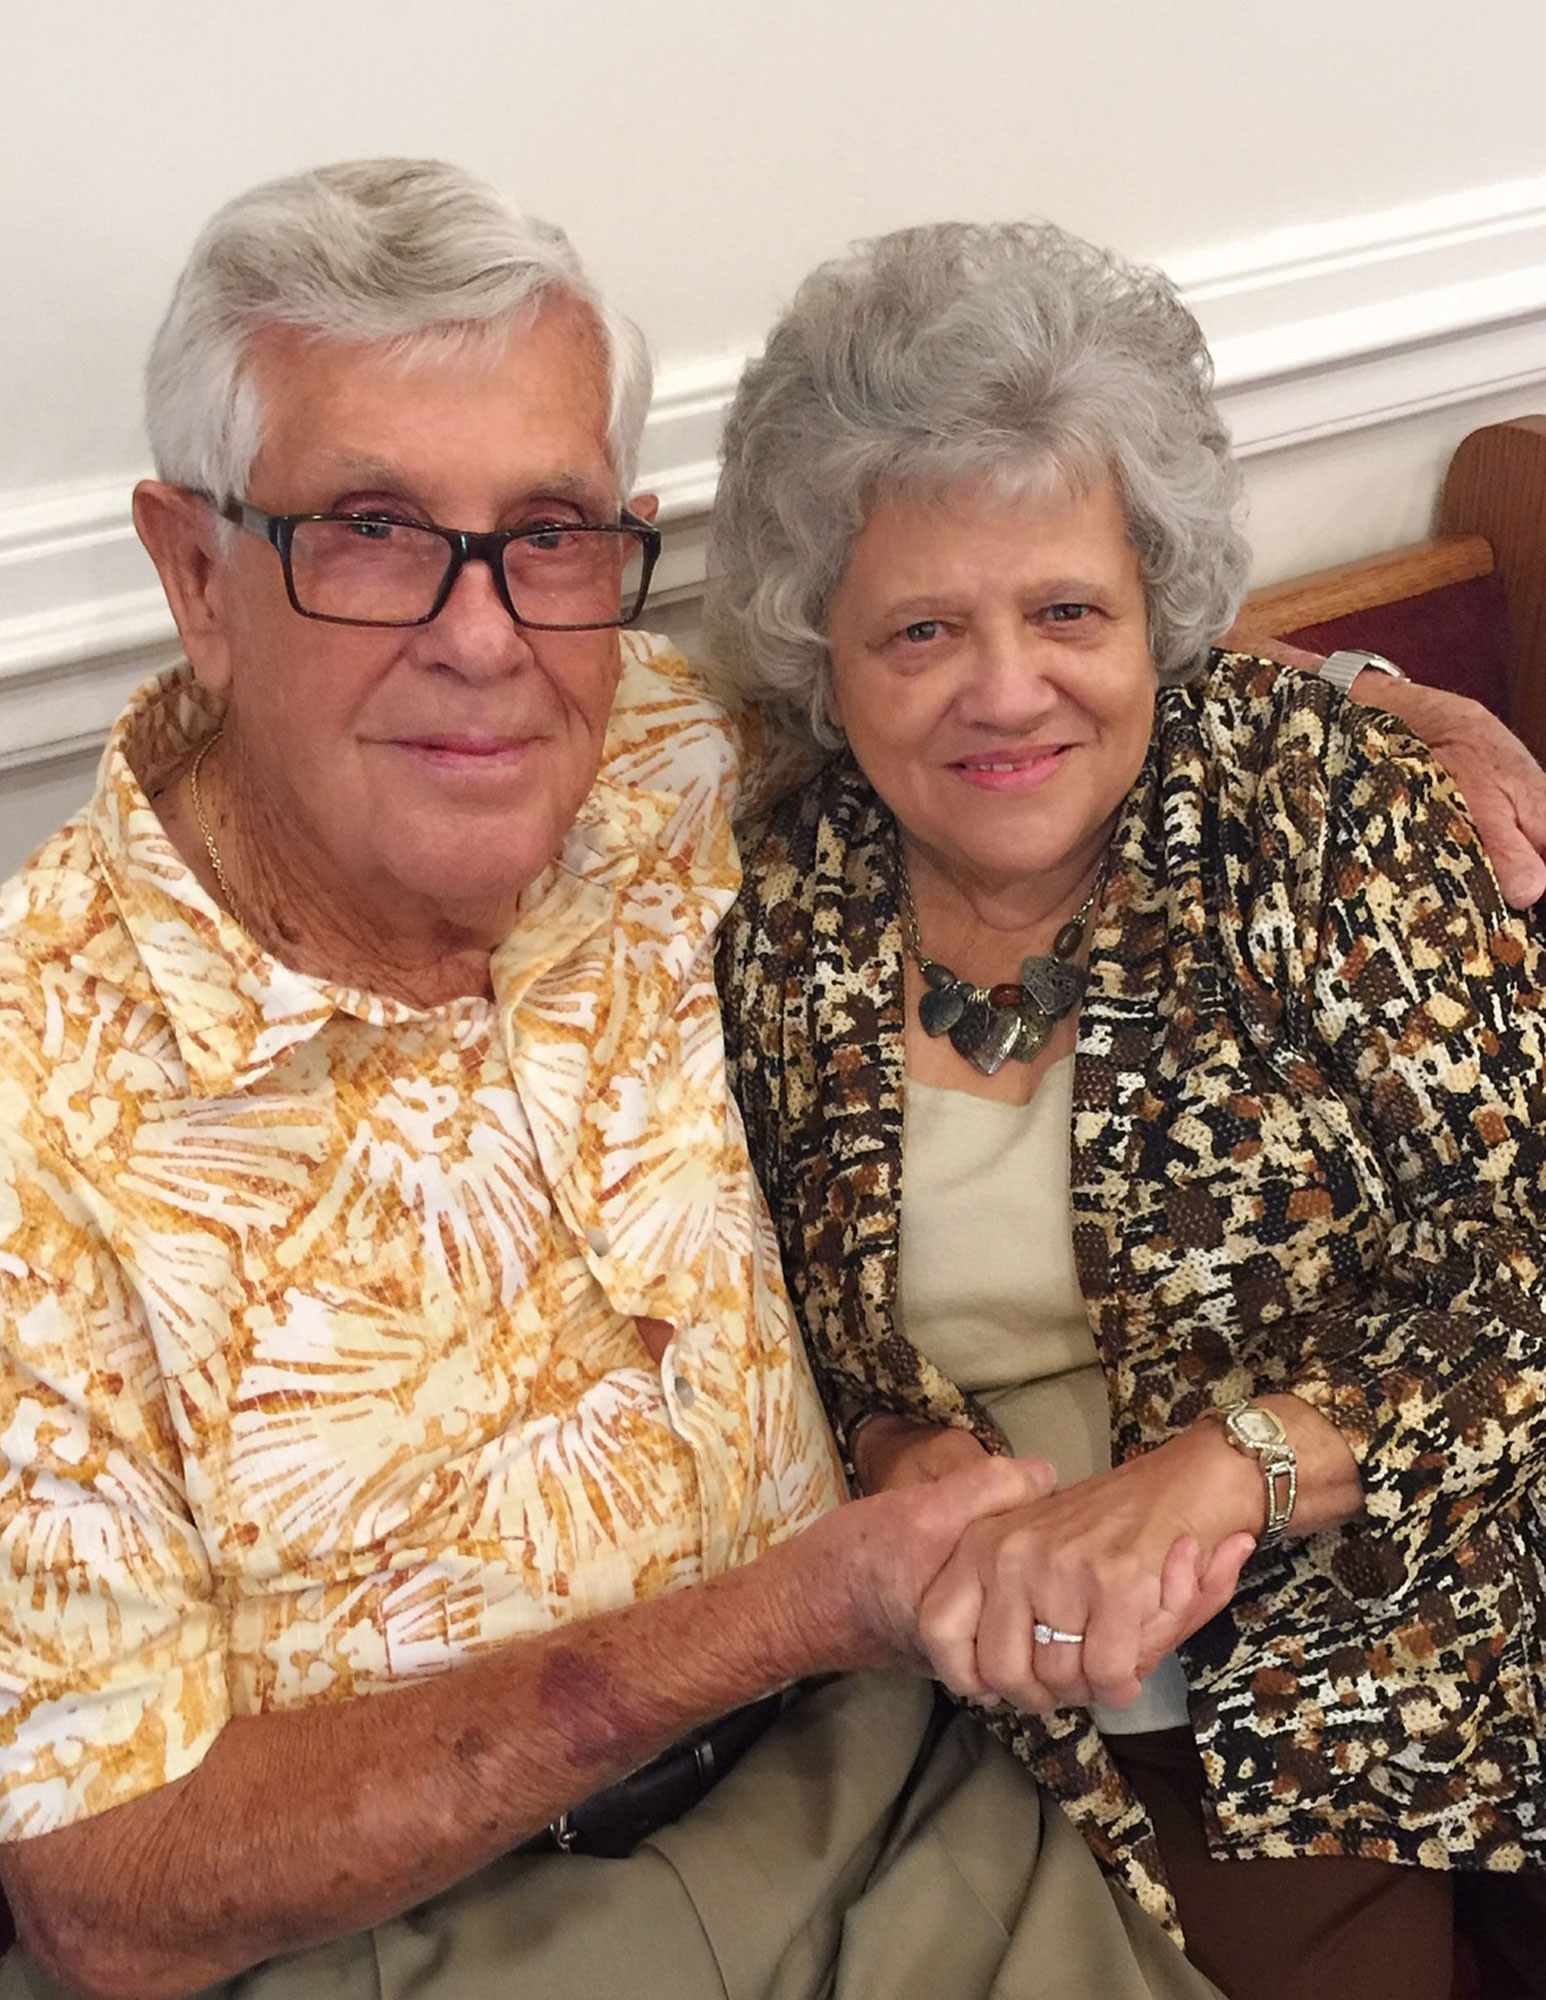 Former Teenage Sweethearts Tie the Knot Almost 70 Years After Their First Date: 'He Treats Me Like a Queen'